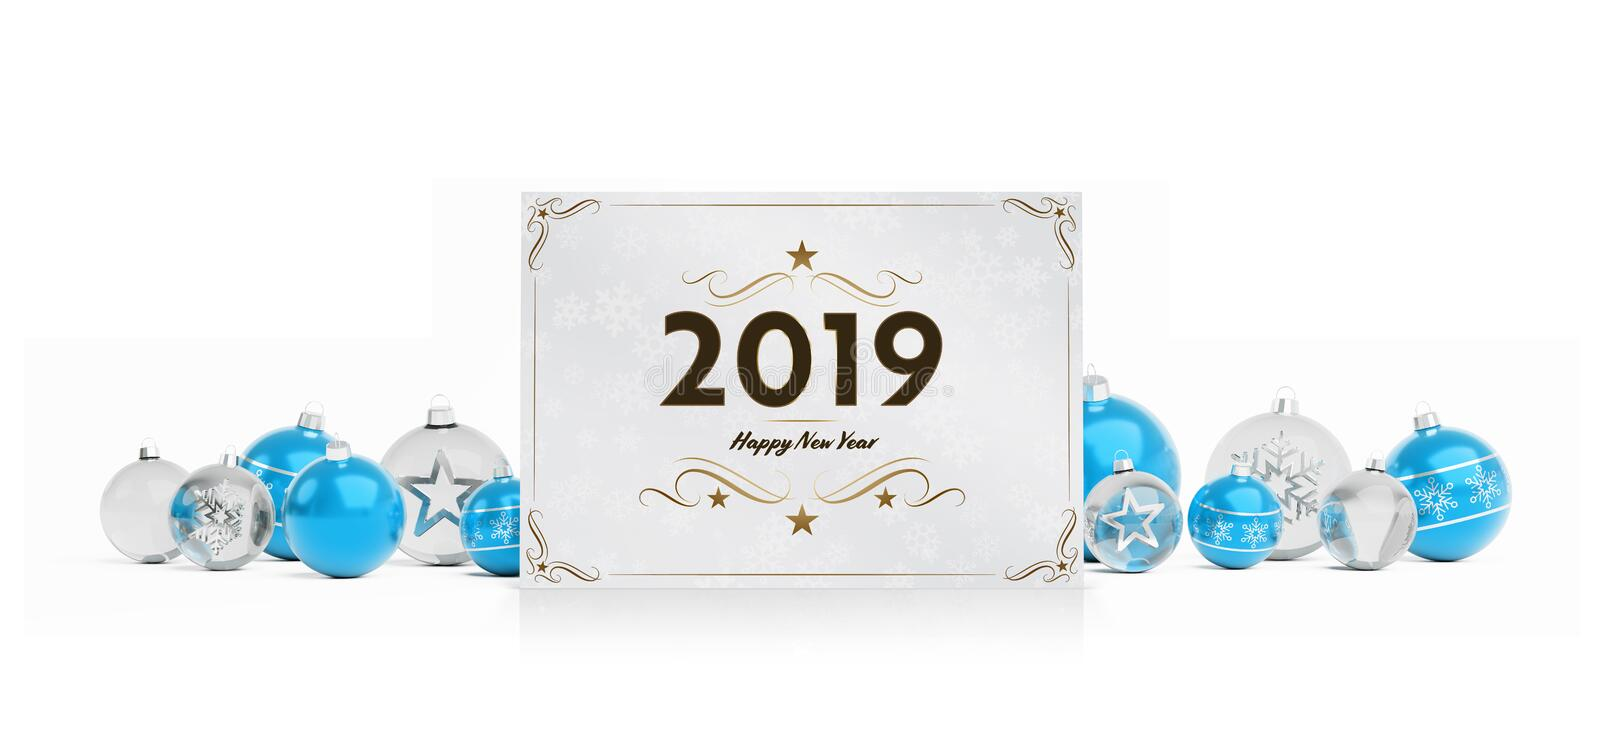 2019 card greetings laying on isolated blue white baubles 3D rendering royalty free illustration